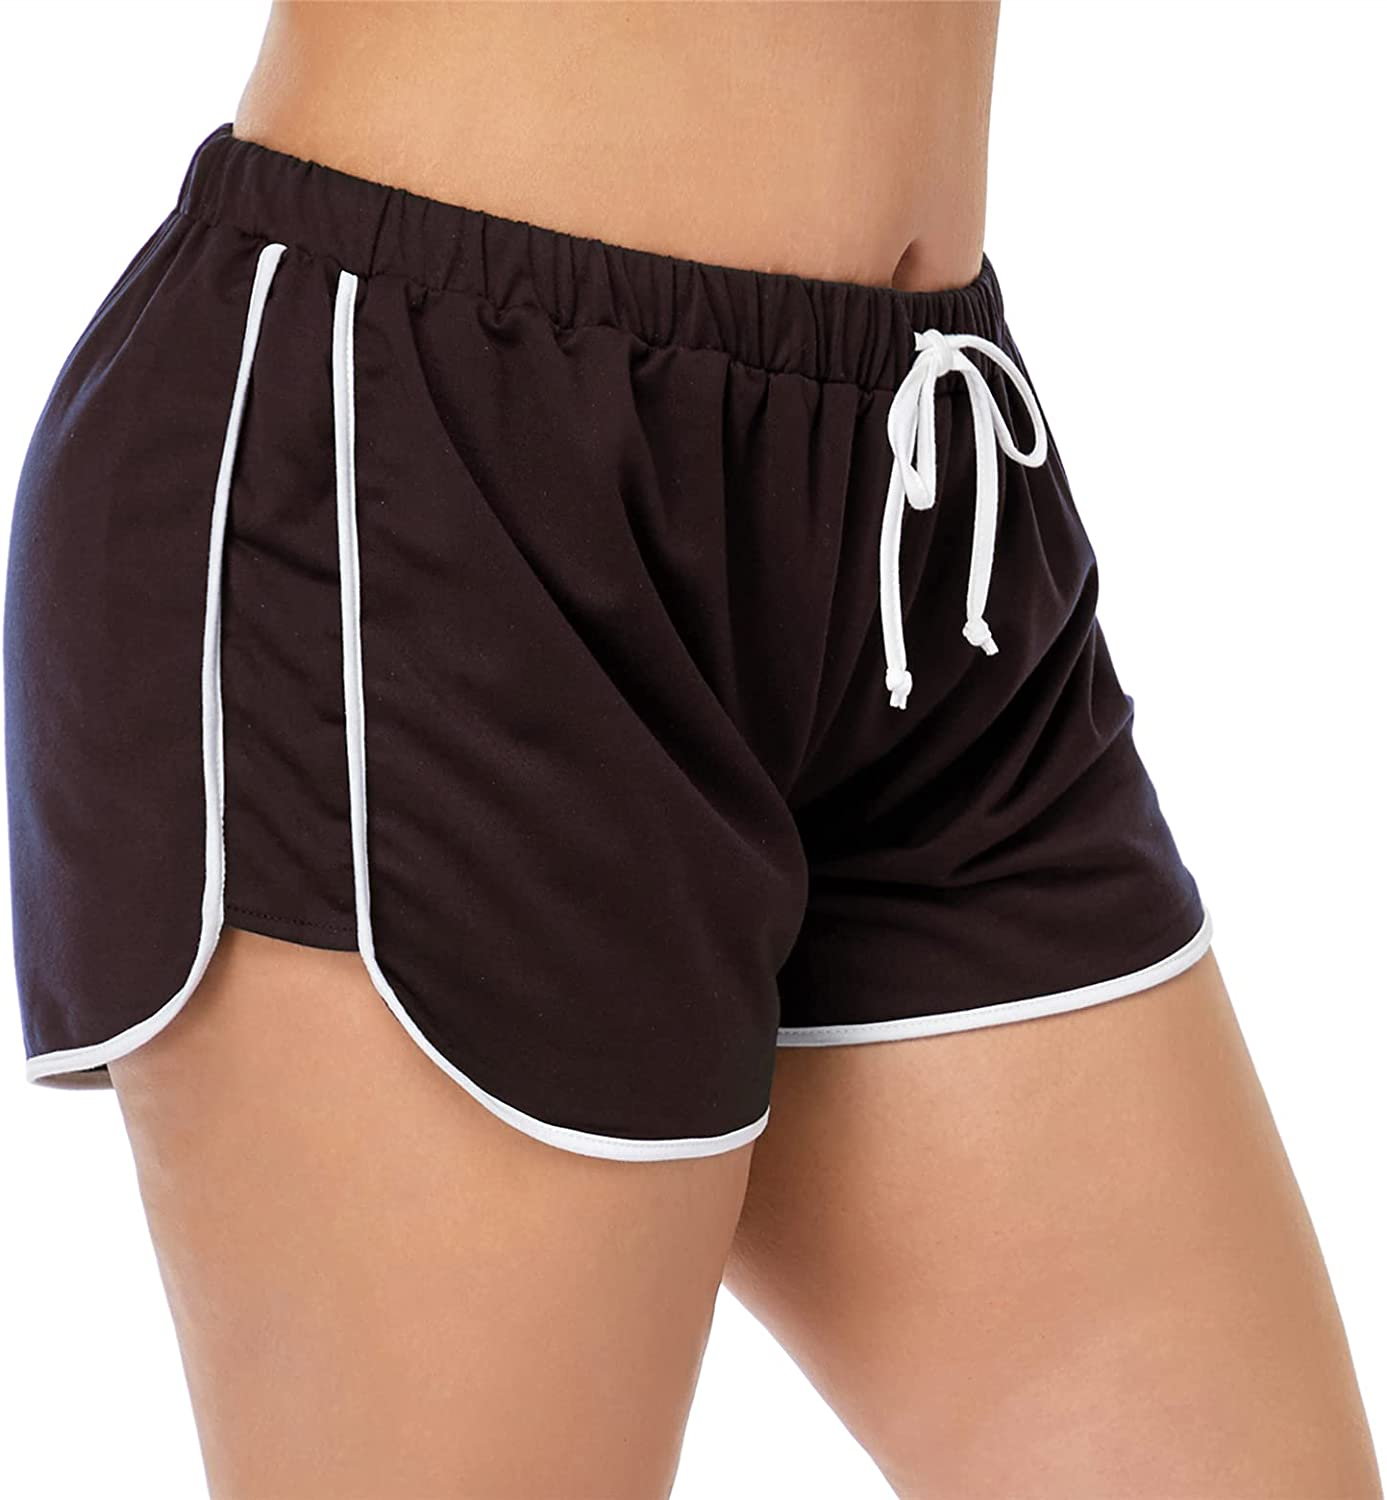 Women Plus Size Dolphin Shorts Athletic Shorts Running Short for Gym Sports Active Yoga Workout Loungewear